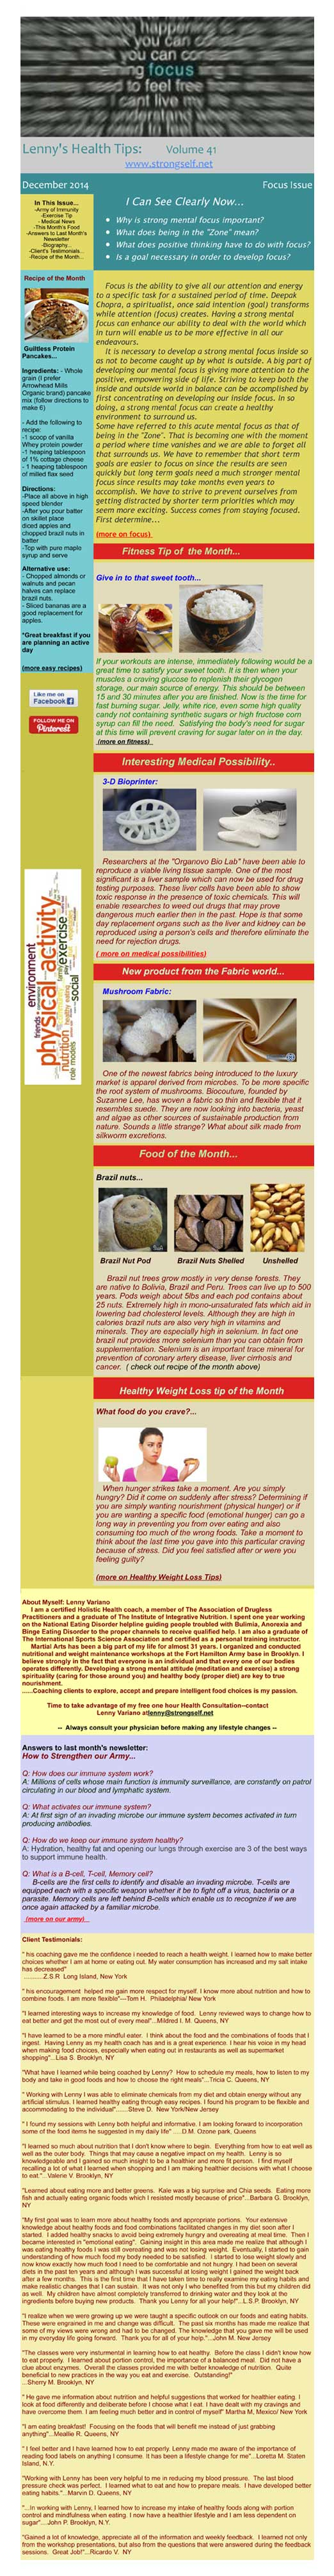 December 2014 Healthy Tips Newsletter from certified Holistic Health Counselor Lenny Variano